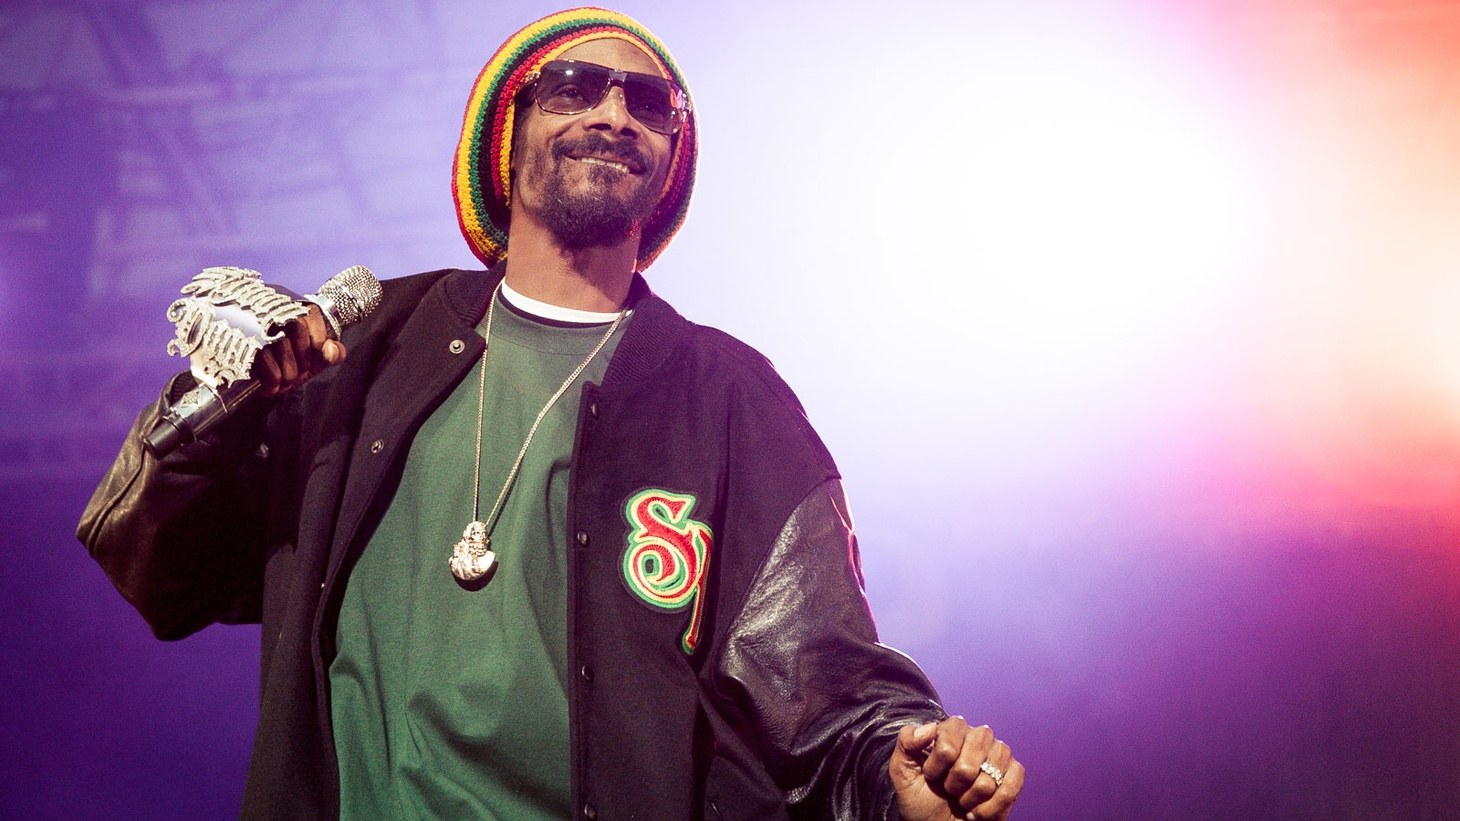 The app Cameo allows people to buy greetings from celebrities such as Snoop Dogg — for a fee.